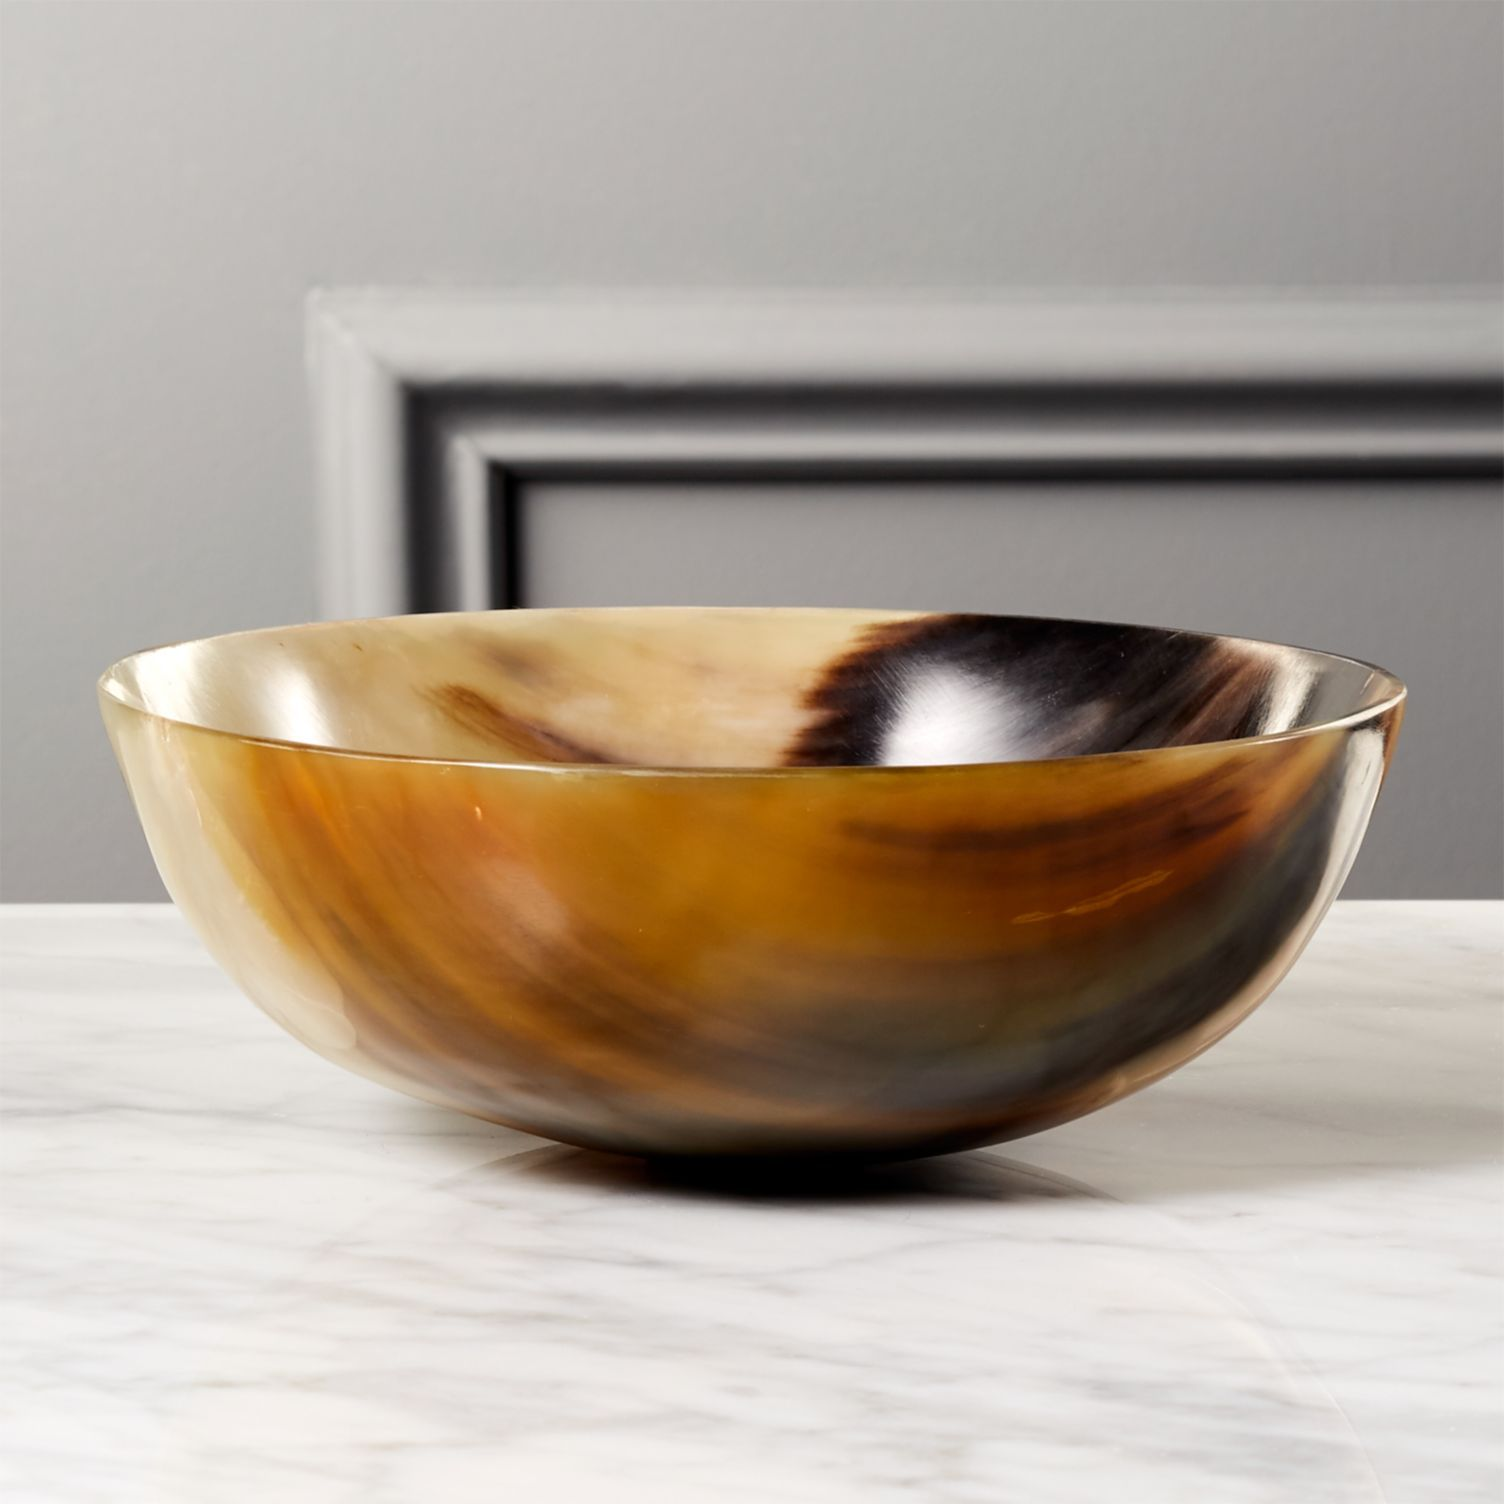 A large bowl made of horn by CB2.